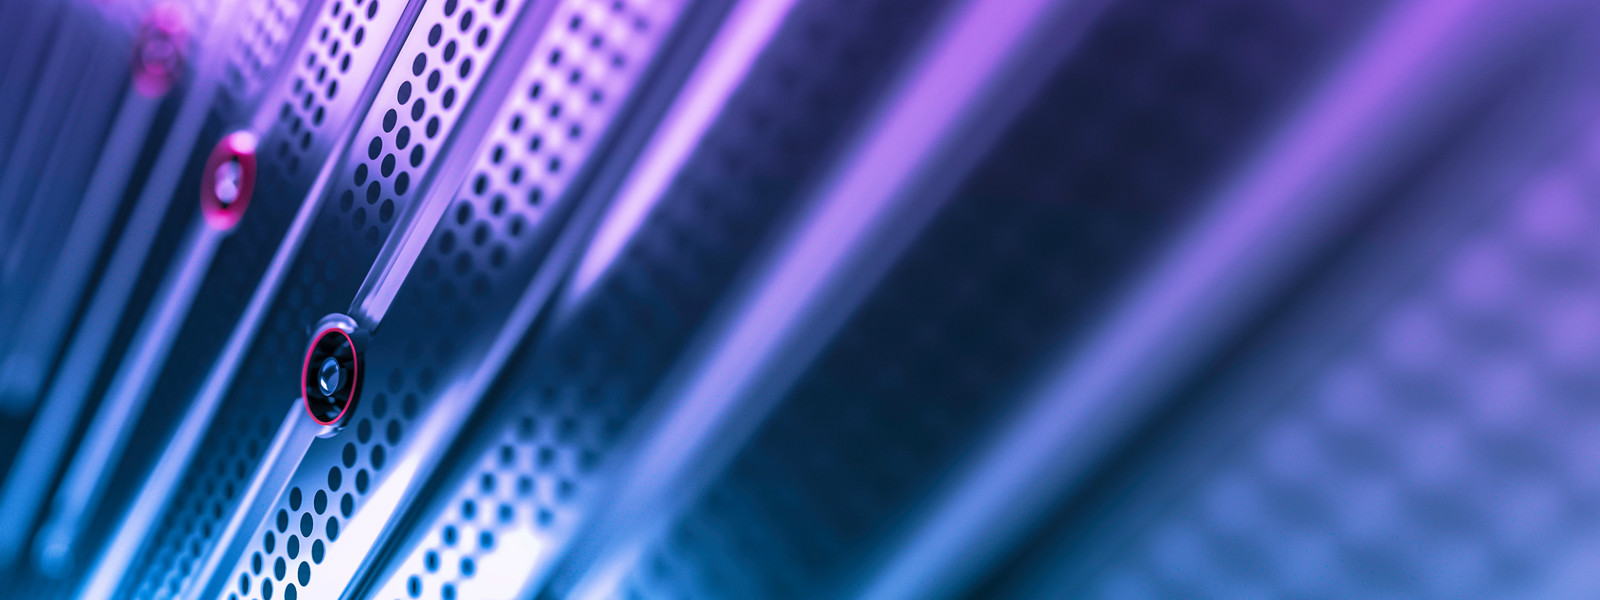 Close view of a server illuminated in blue and purple hues